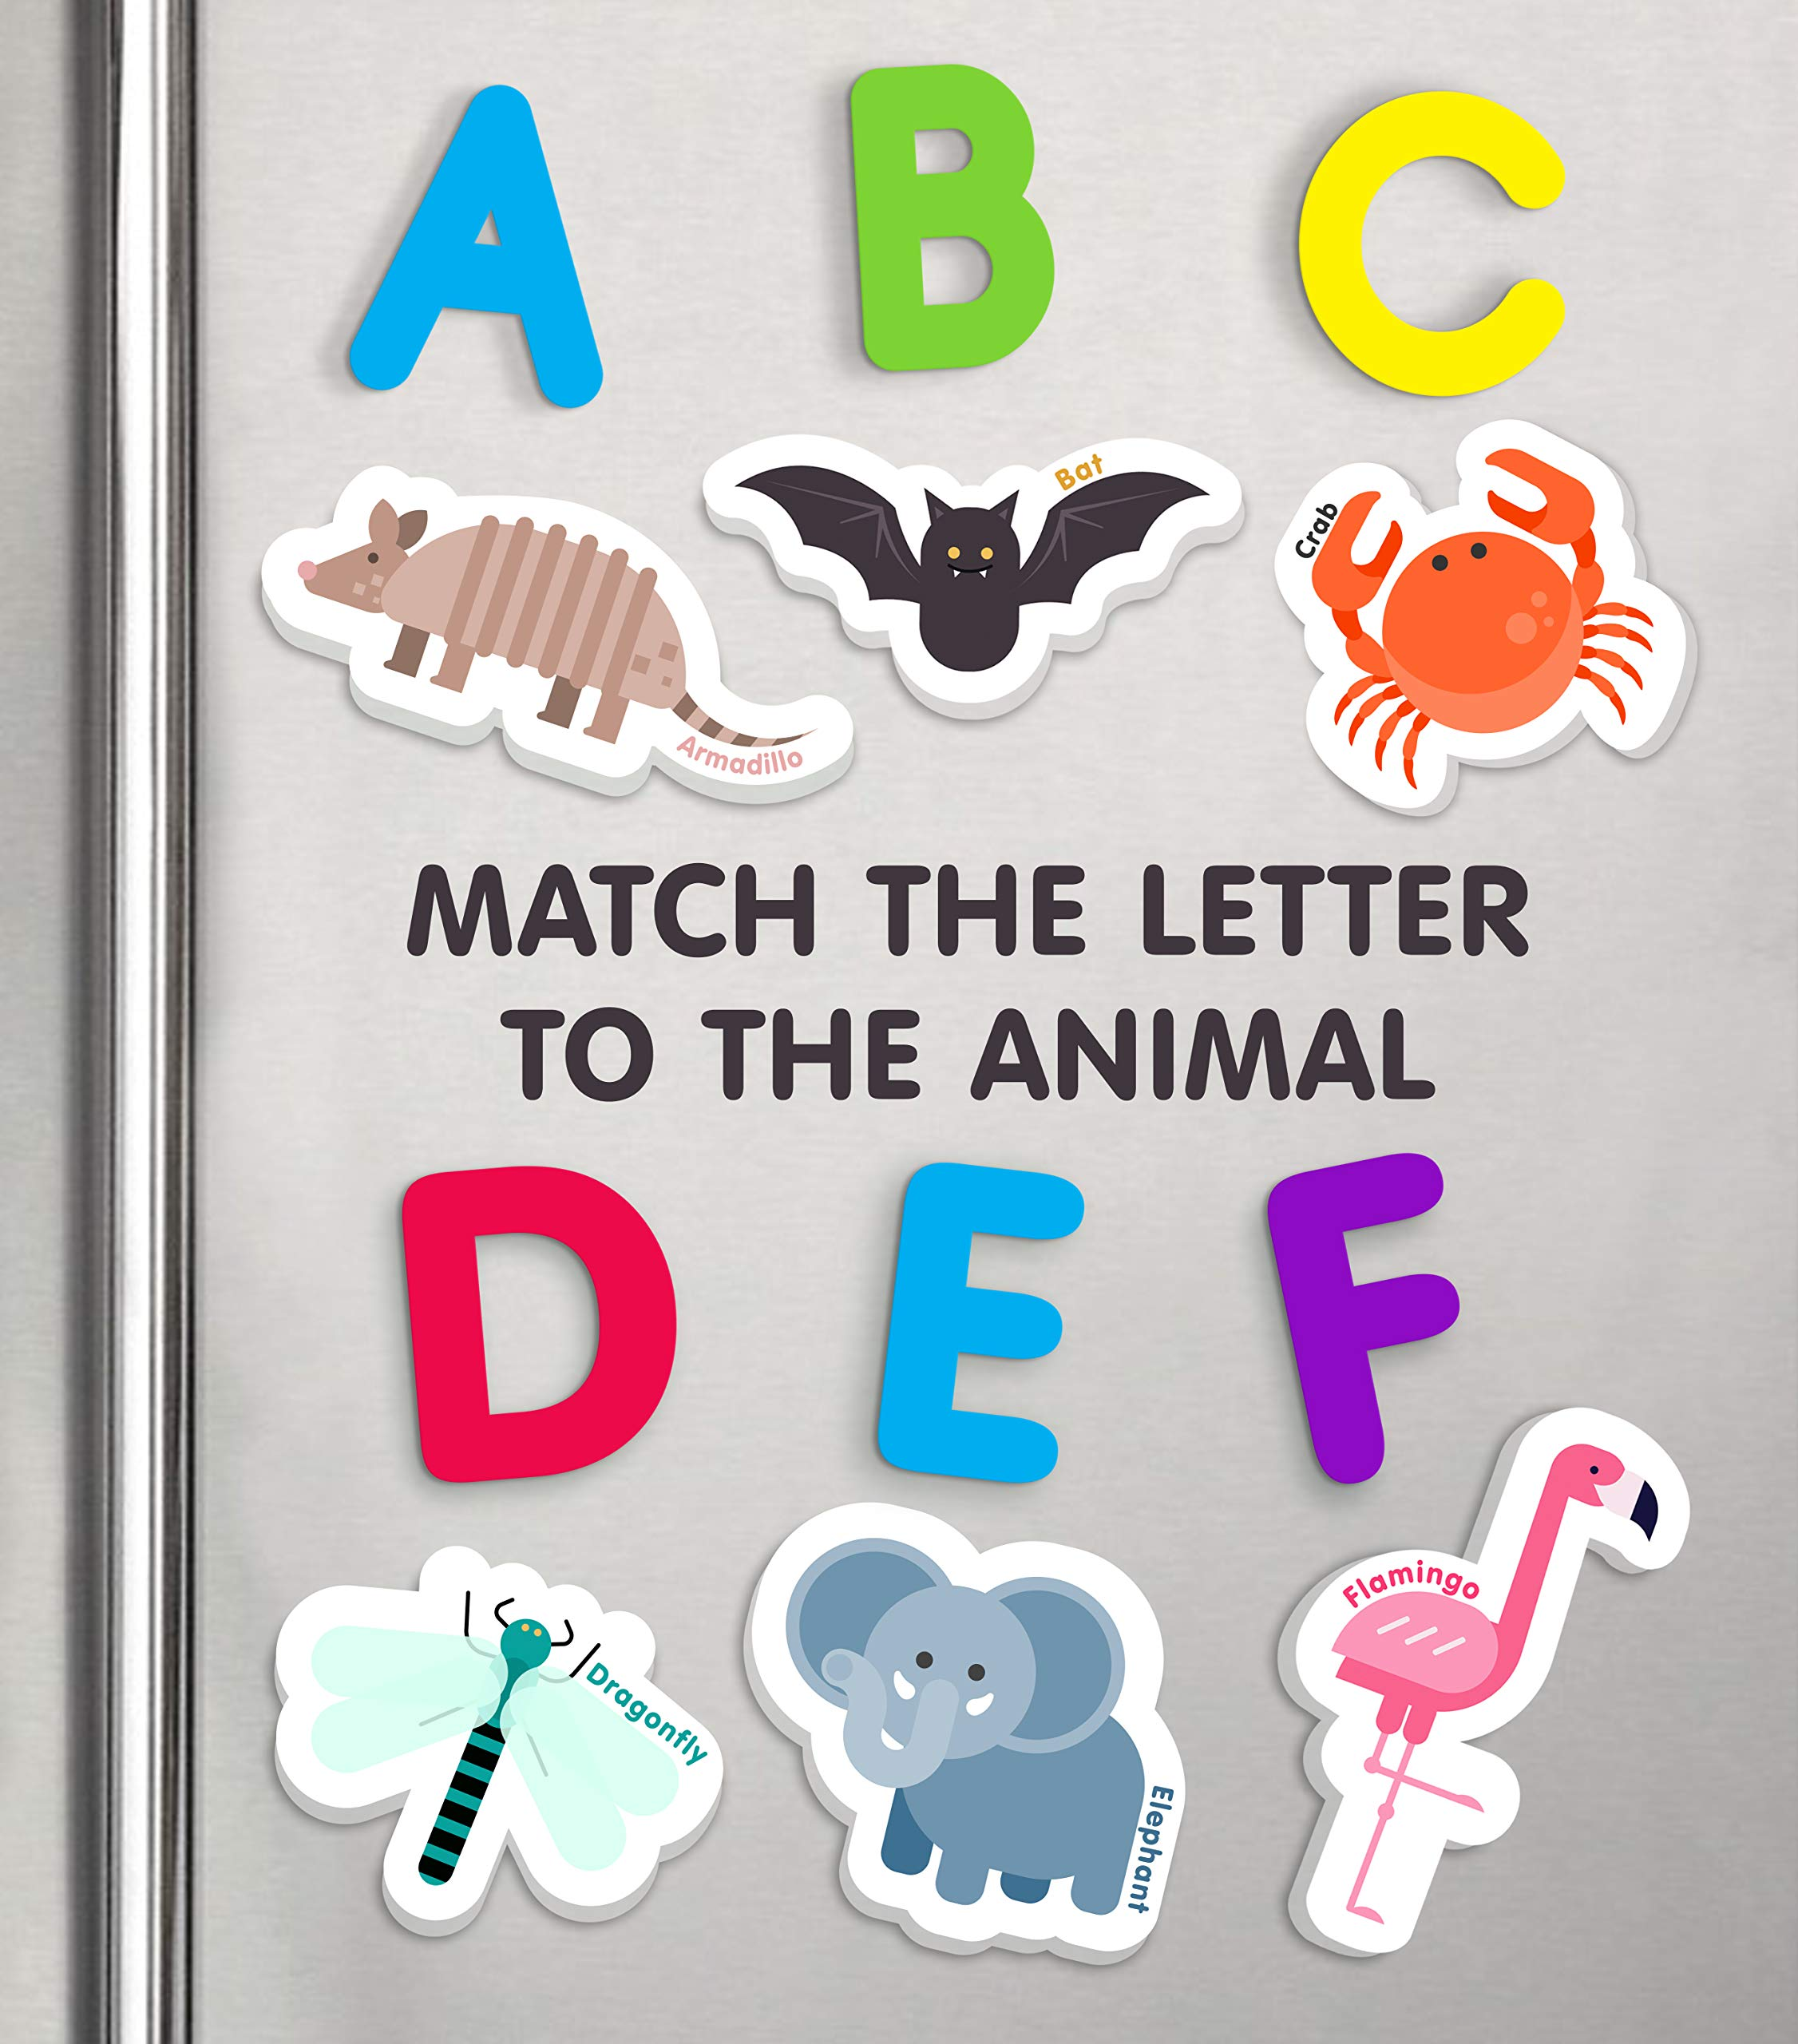 Curious Columbus Animal Magnets For Kids. Includes Alphabet Letters. Set of 52 Pieces. Foam Educational Magnetic Toy Objects For Word Recognition. 26 Picture Fridge Magnets and 26 ABC Letters From A-Z by Curious Columbus (Image #3)